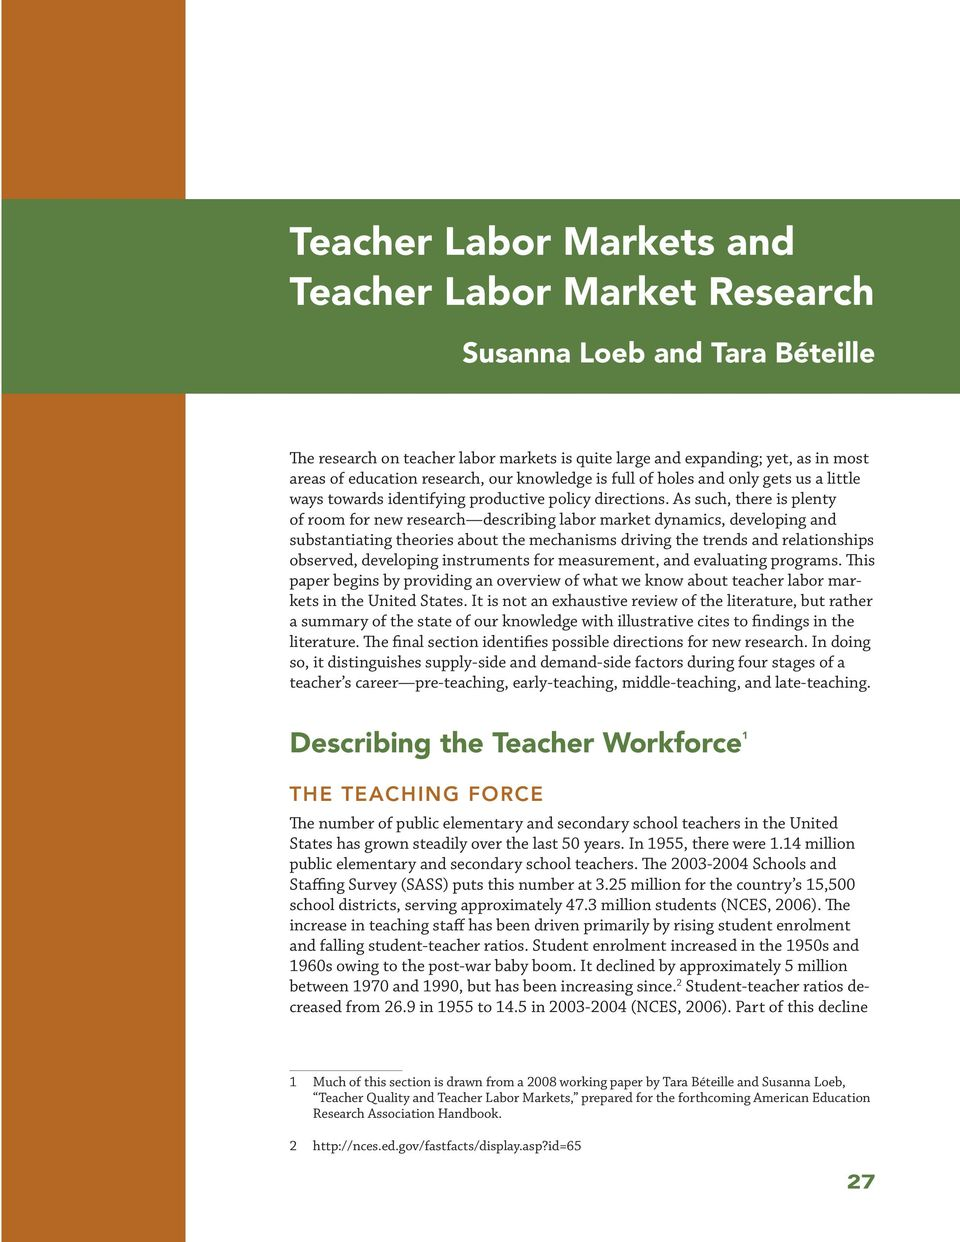 labor market research papers Free essays on labor market research use our research documents to help you learn 1 - 25.